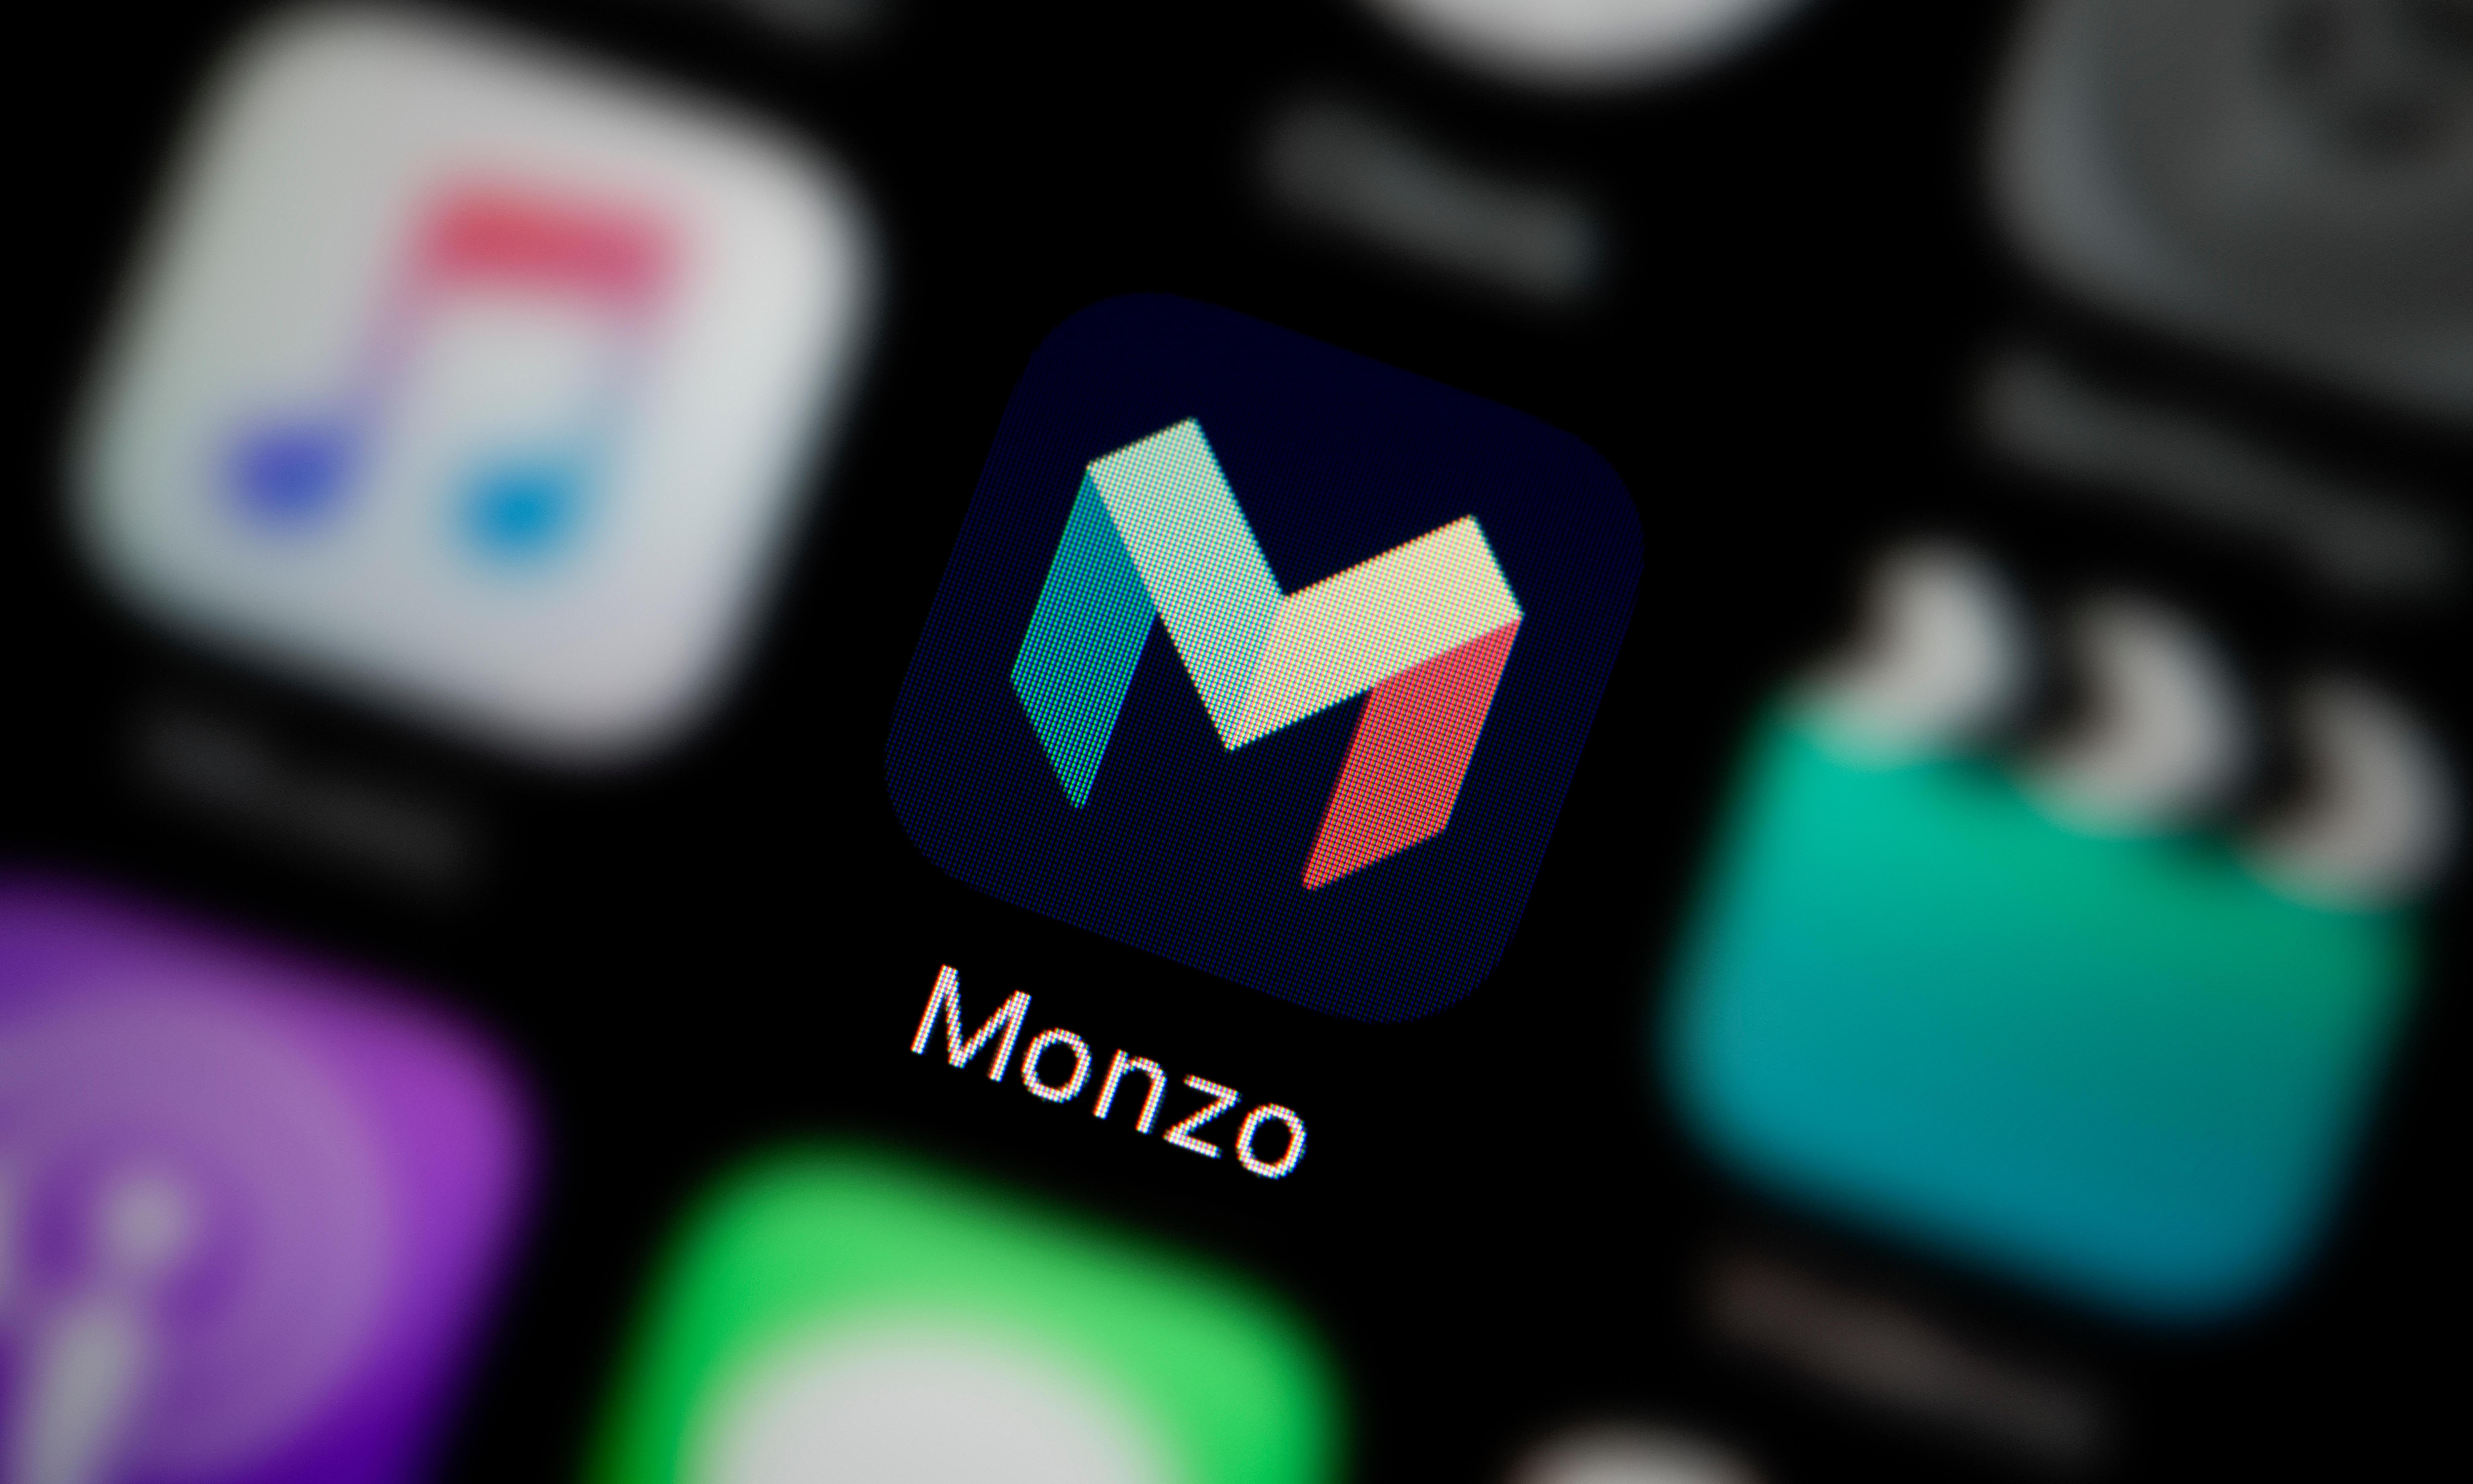 Monzo urges 480,000 customers to change their pin numbers